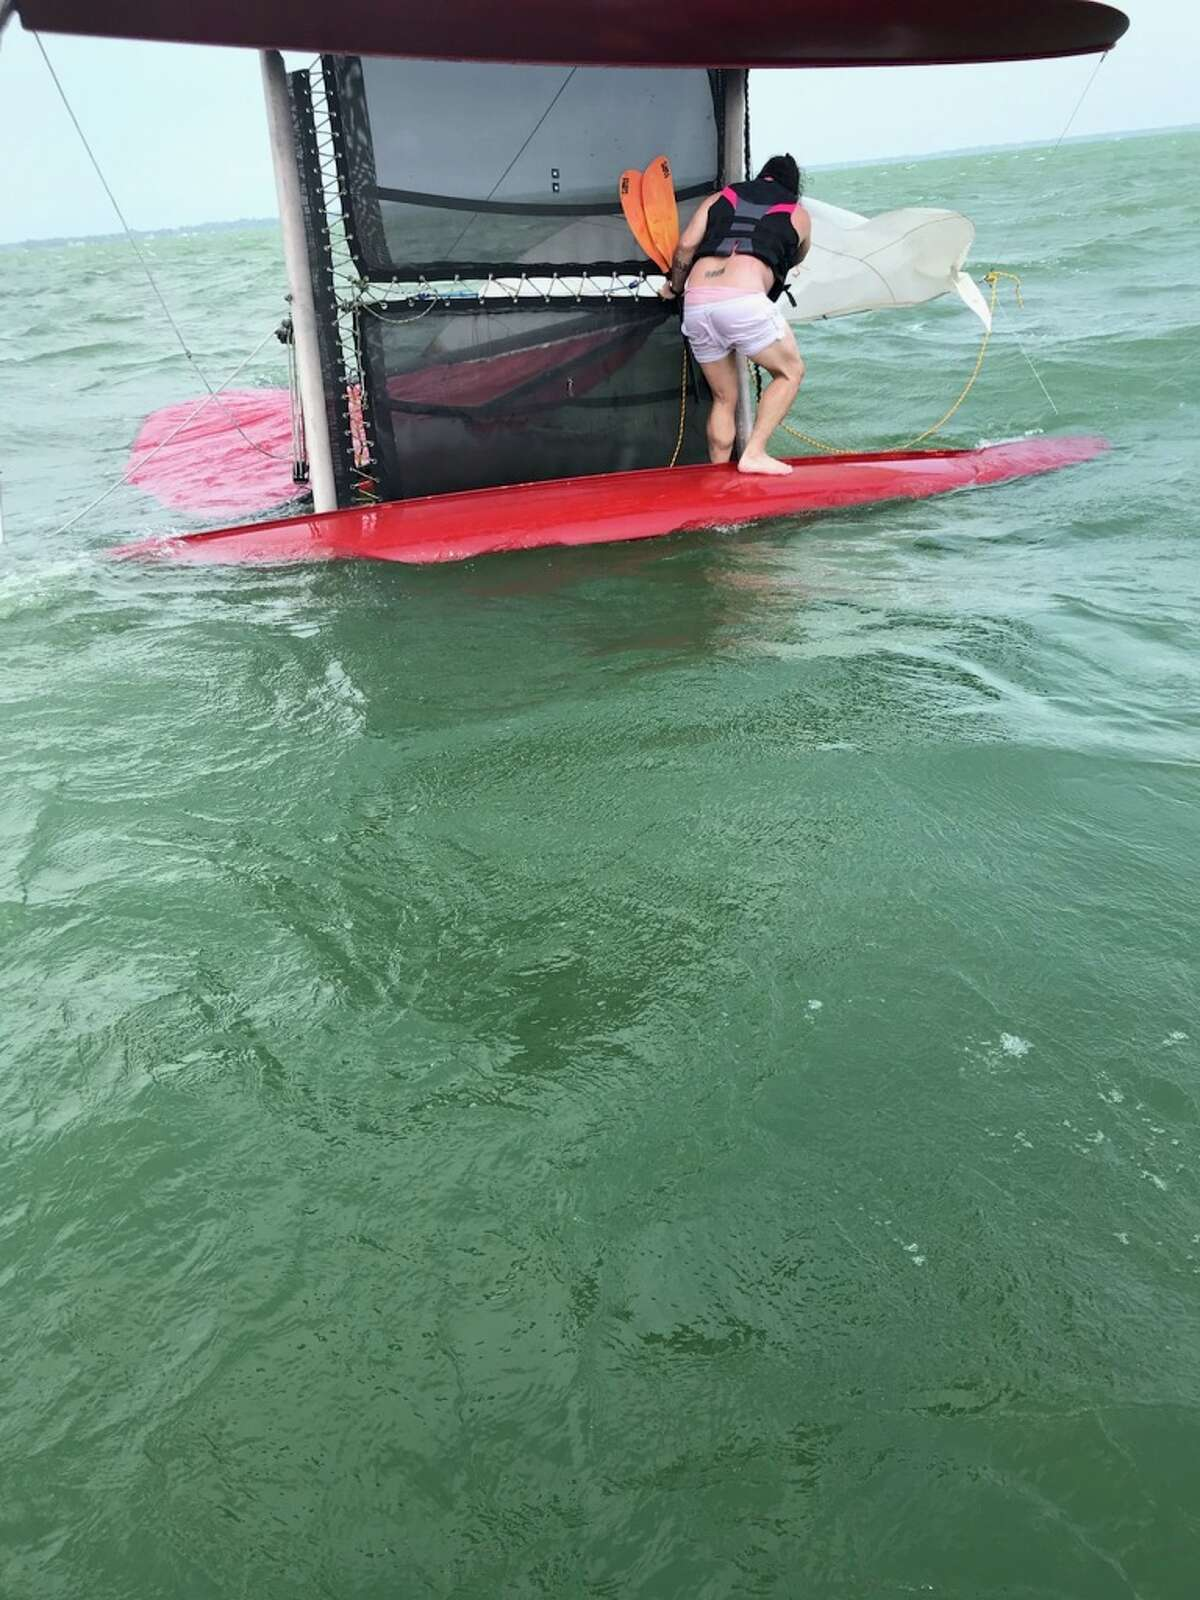 Two boaters were rescued by the Huron County Sheriff's Office after bystanders reported a capsized catamaran July 20.